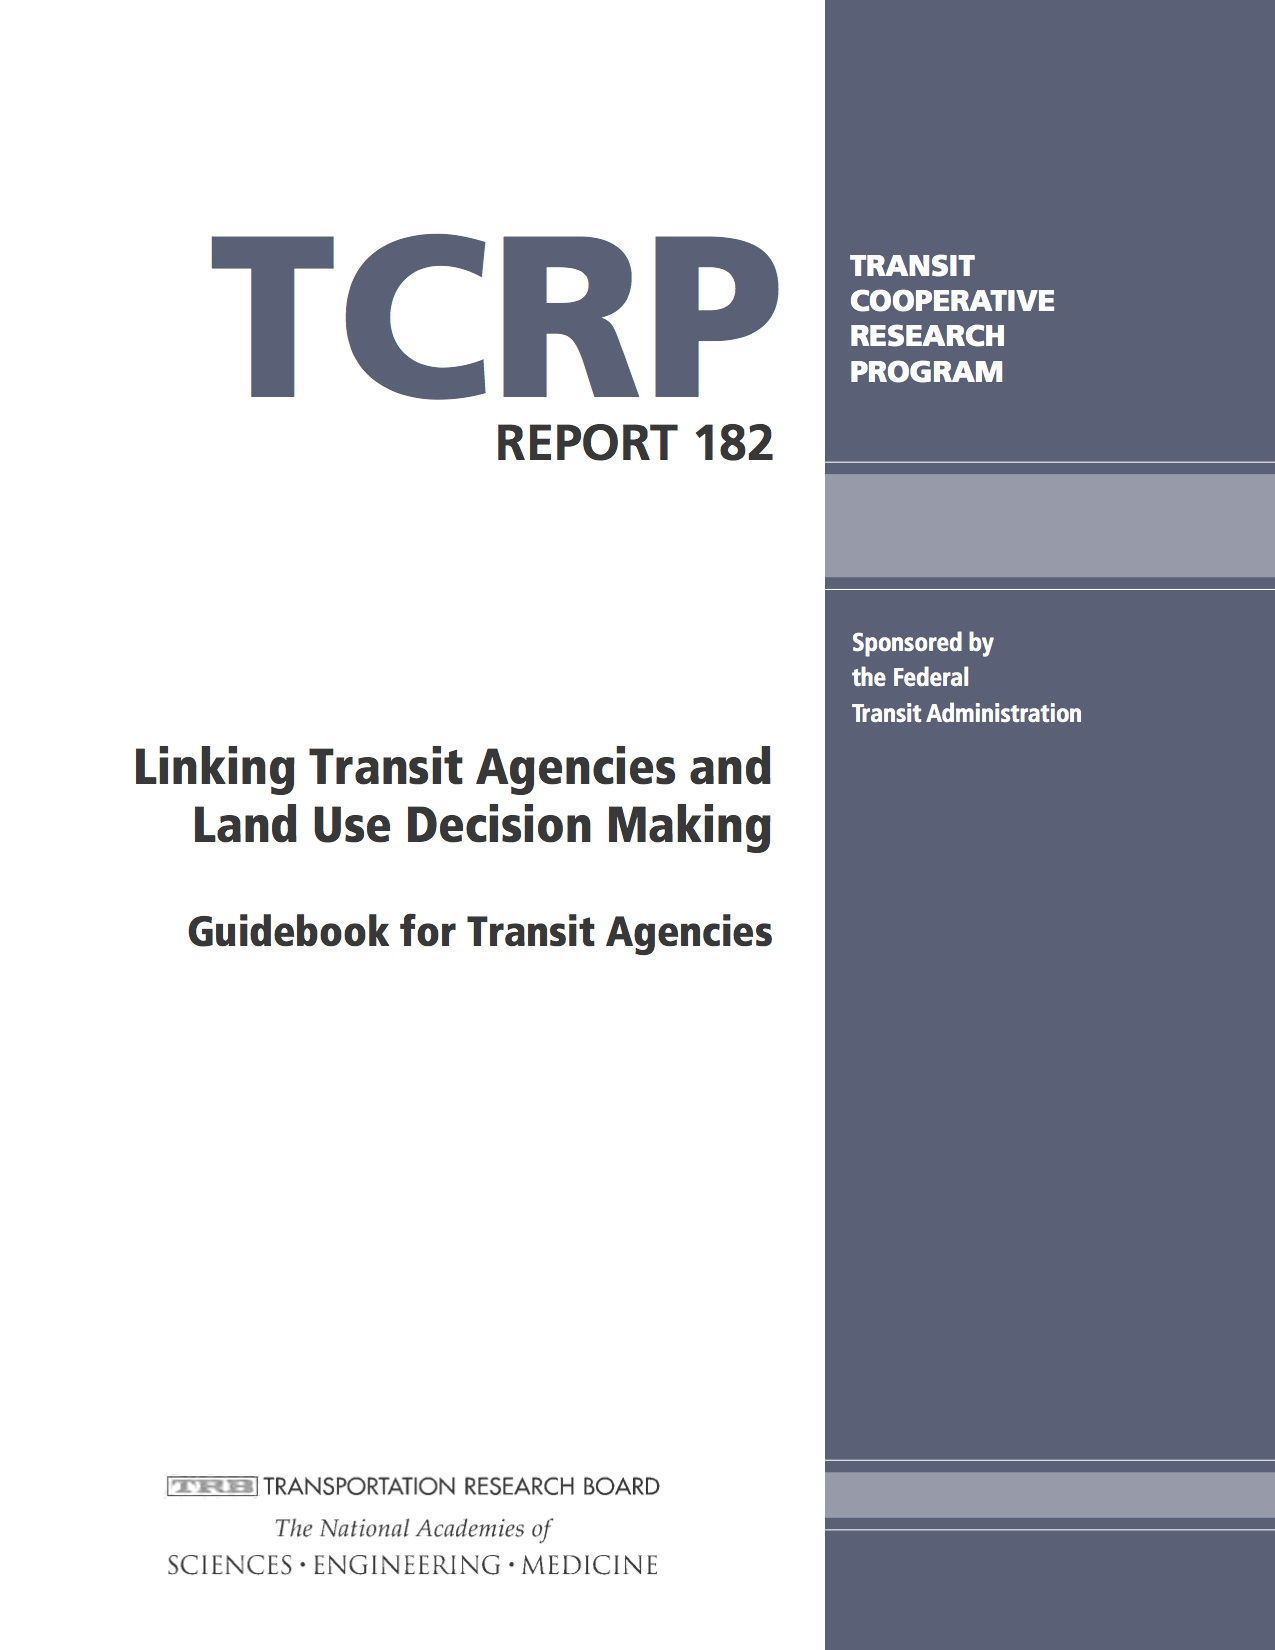 Linking Transit Agencies and Land Use Decision Making: Guidebook for Transit Agencies